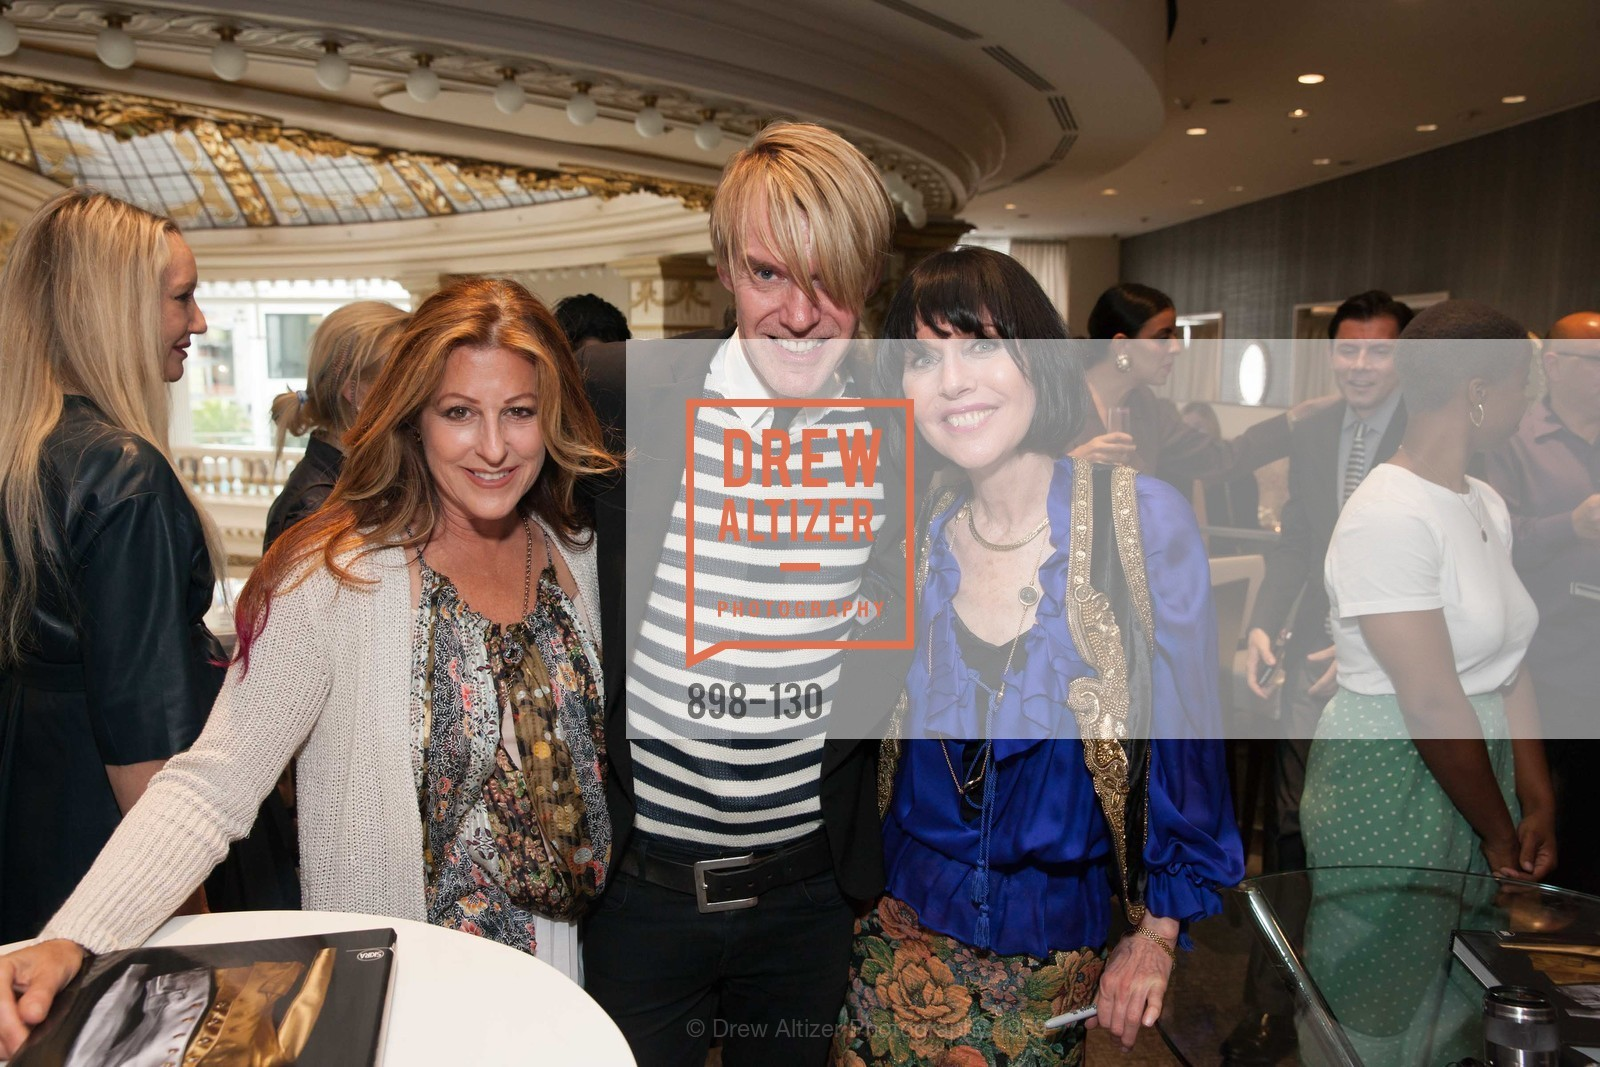 Victoria Loren Miller, Ken Downing, Christine Suppes, Electric Fashion Book Signing with Christine Suppes & Ken Downing, Neiman Marcus, Rotunda, May 26th, 2015,Drew Altizer, Drew Altizer Photography, full-service agency, private events, San Francisco photographer, photographer california